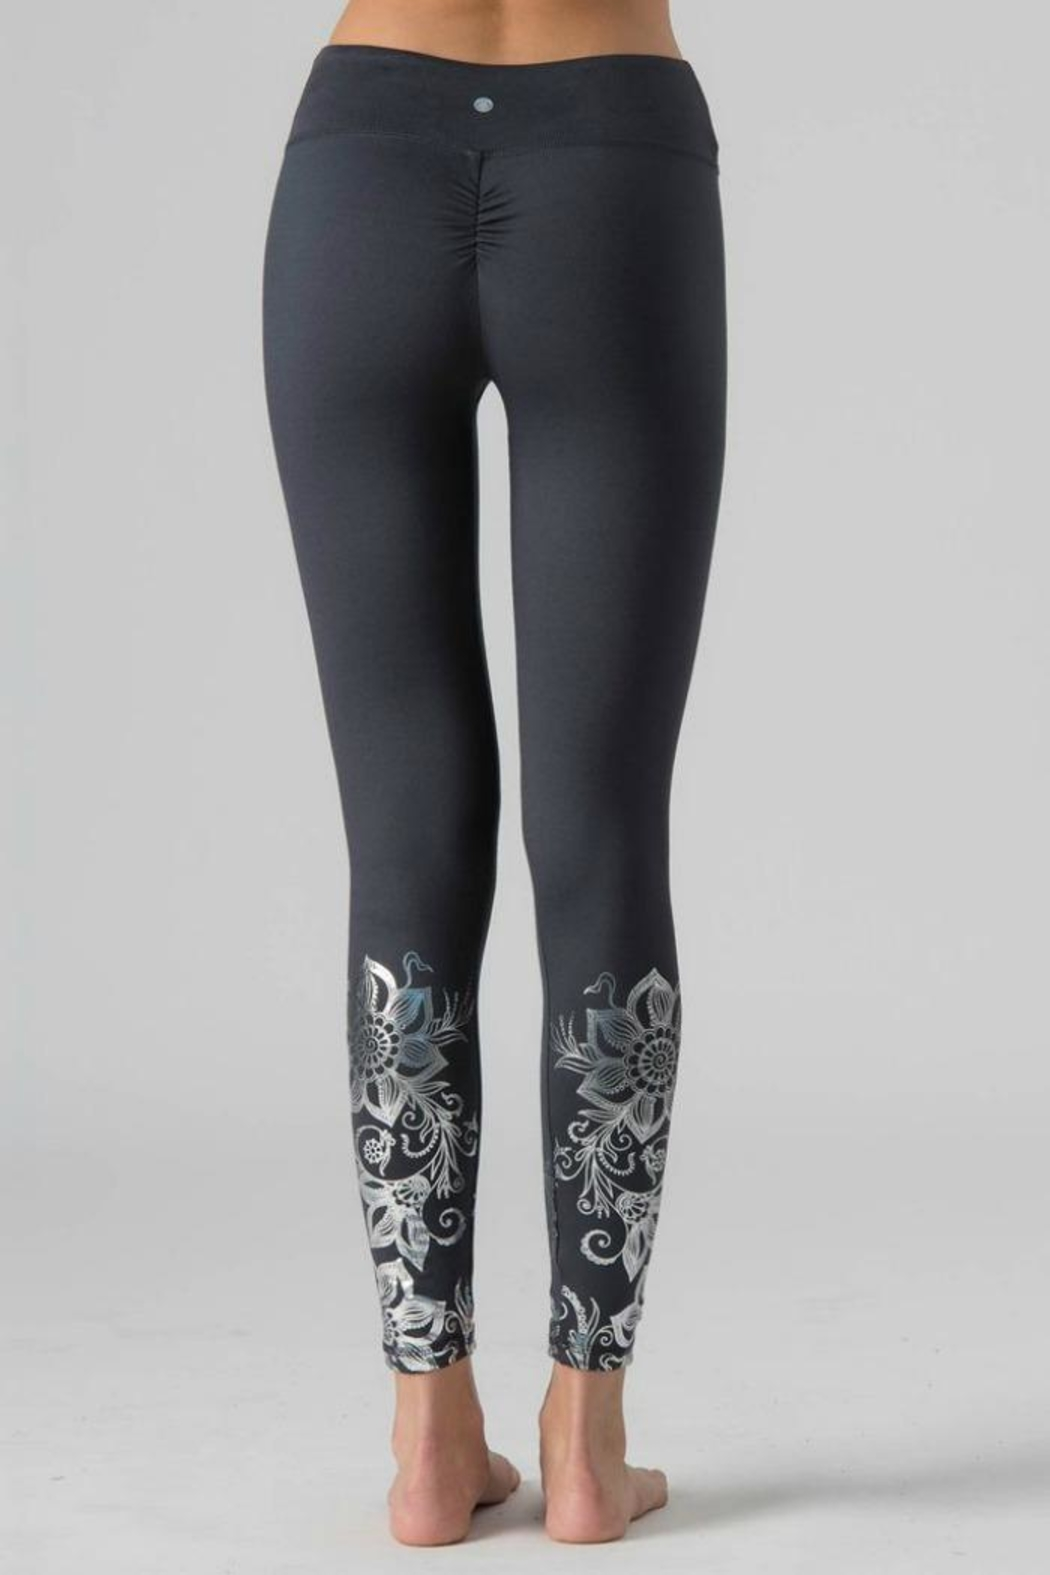 d8976b9ebce3a6 Jala Clothing Foiled Henna Leggings from Michigan by SheActive ...